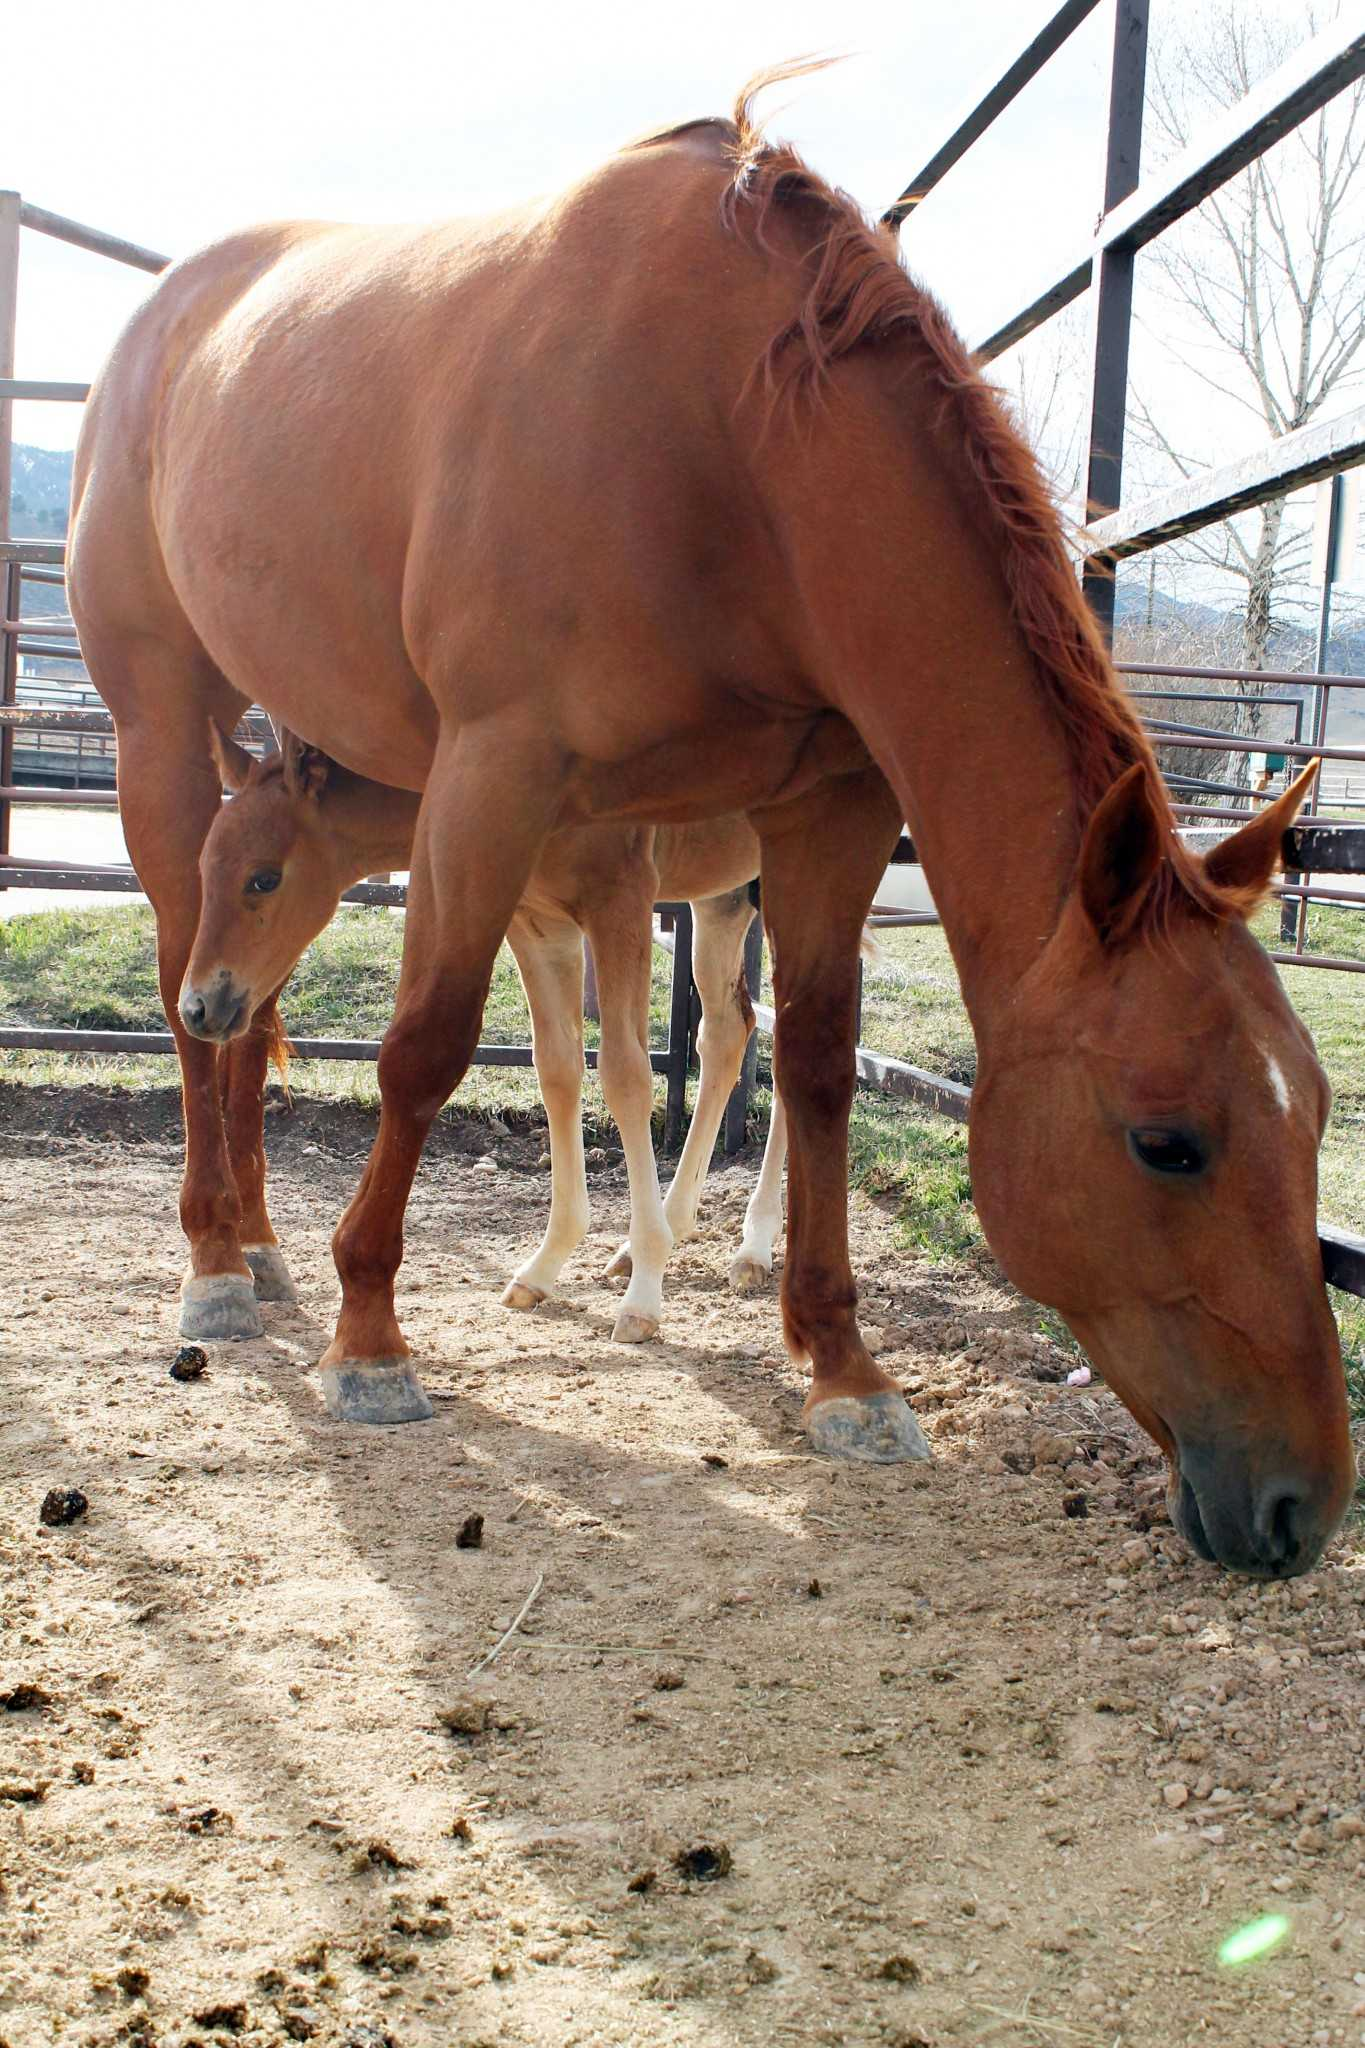 A fourteen-day-old foal peeks out from under its mother after nursing at the CSU Equine Reproduction Center. The reproduction center houses pregnant mares and oversees the birth of baby horses.